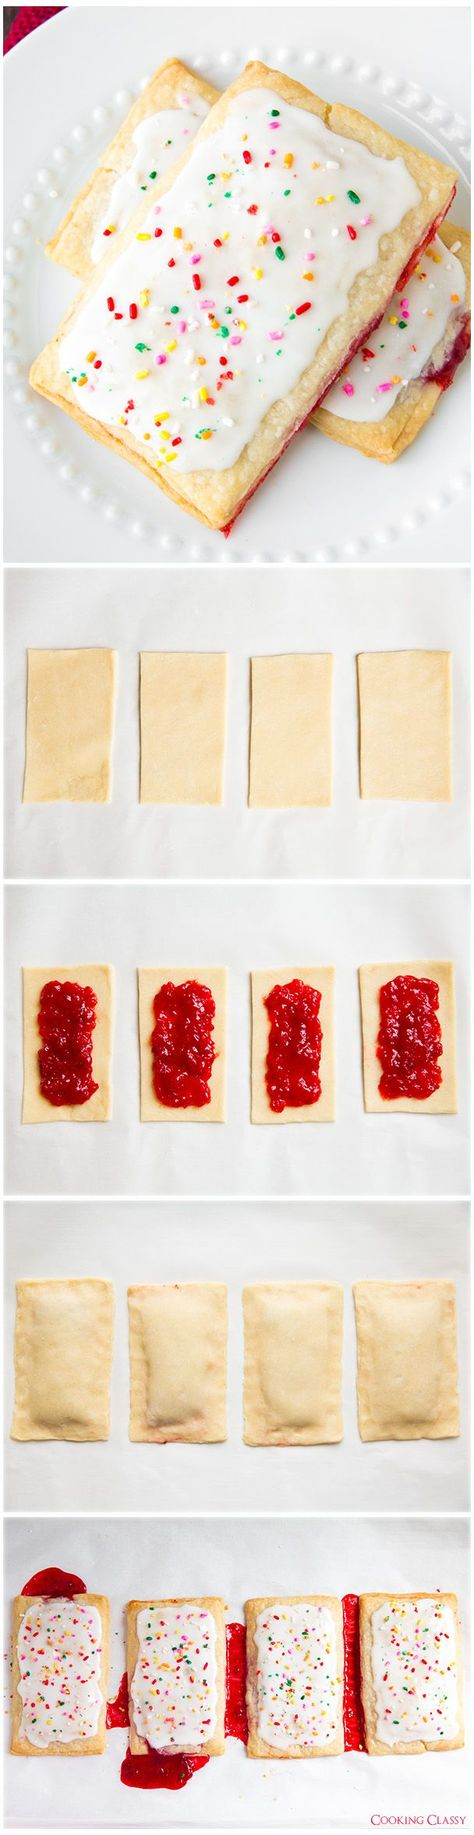 Homemade Pop Tarts ~ The Kellogg's Pop Tarts are super popular delicious treats that seem to be loved by everyone.